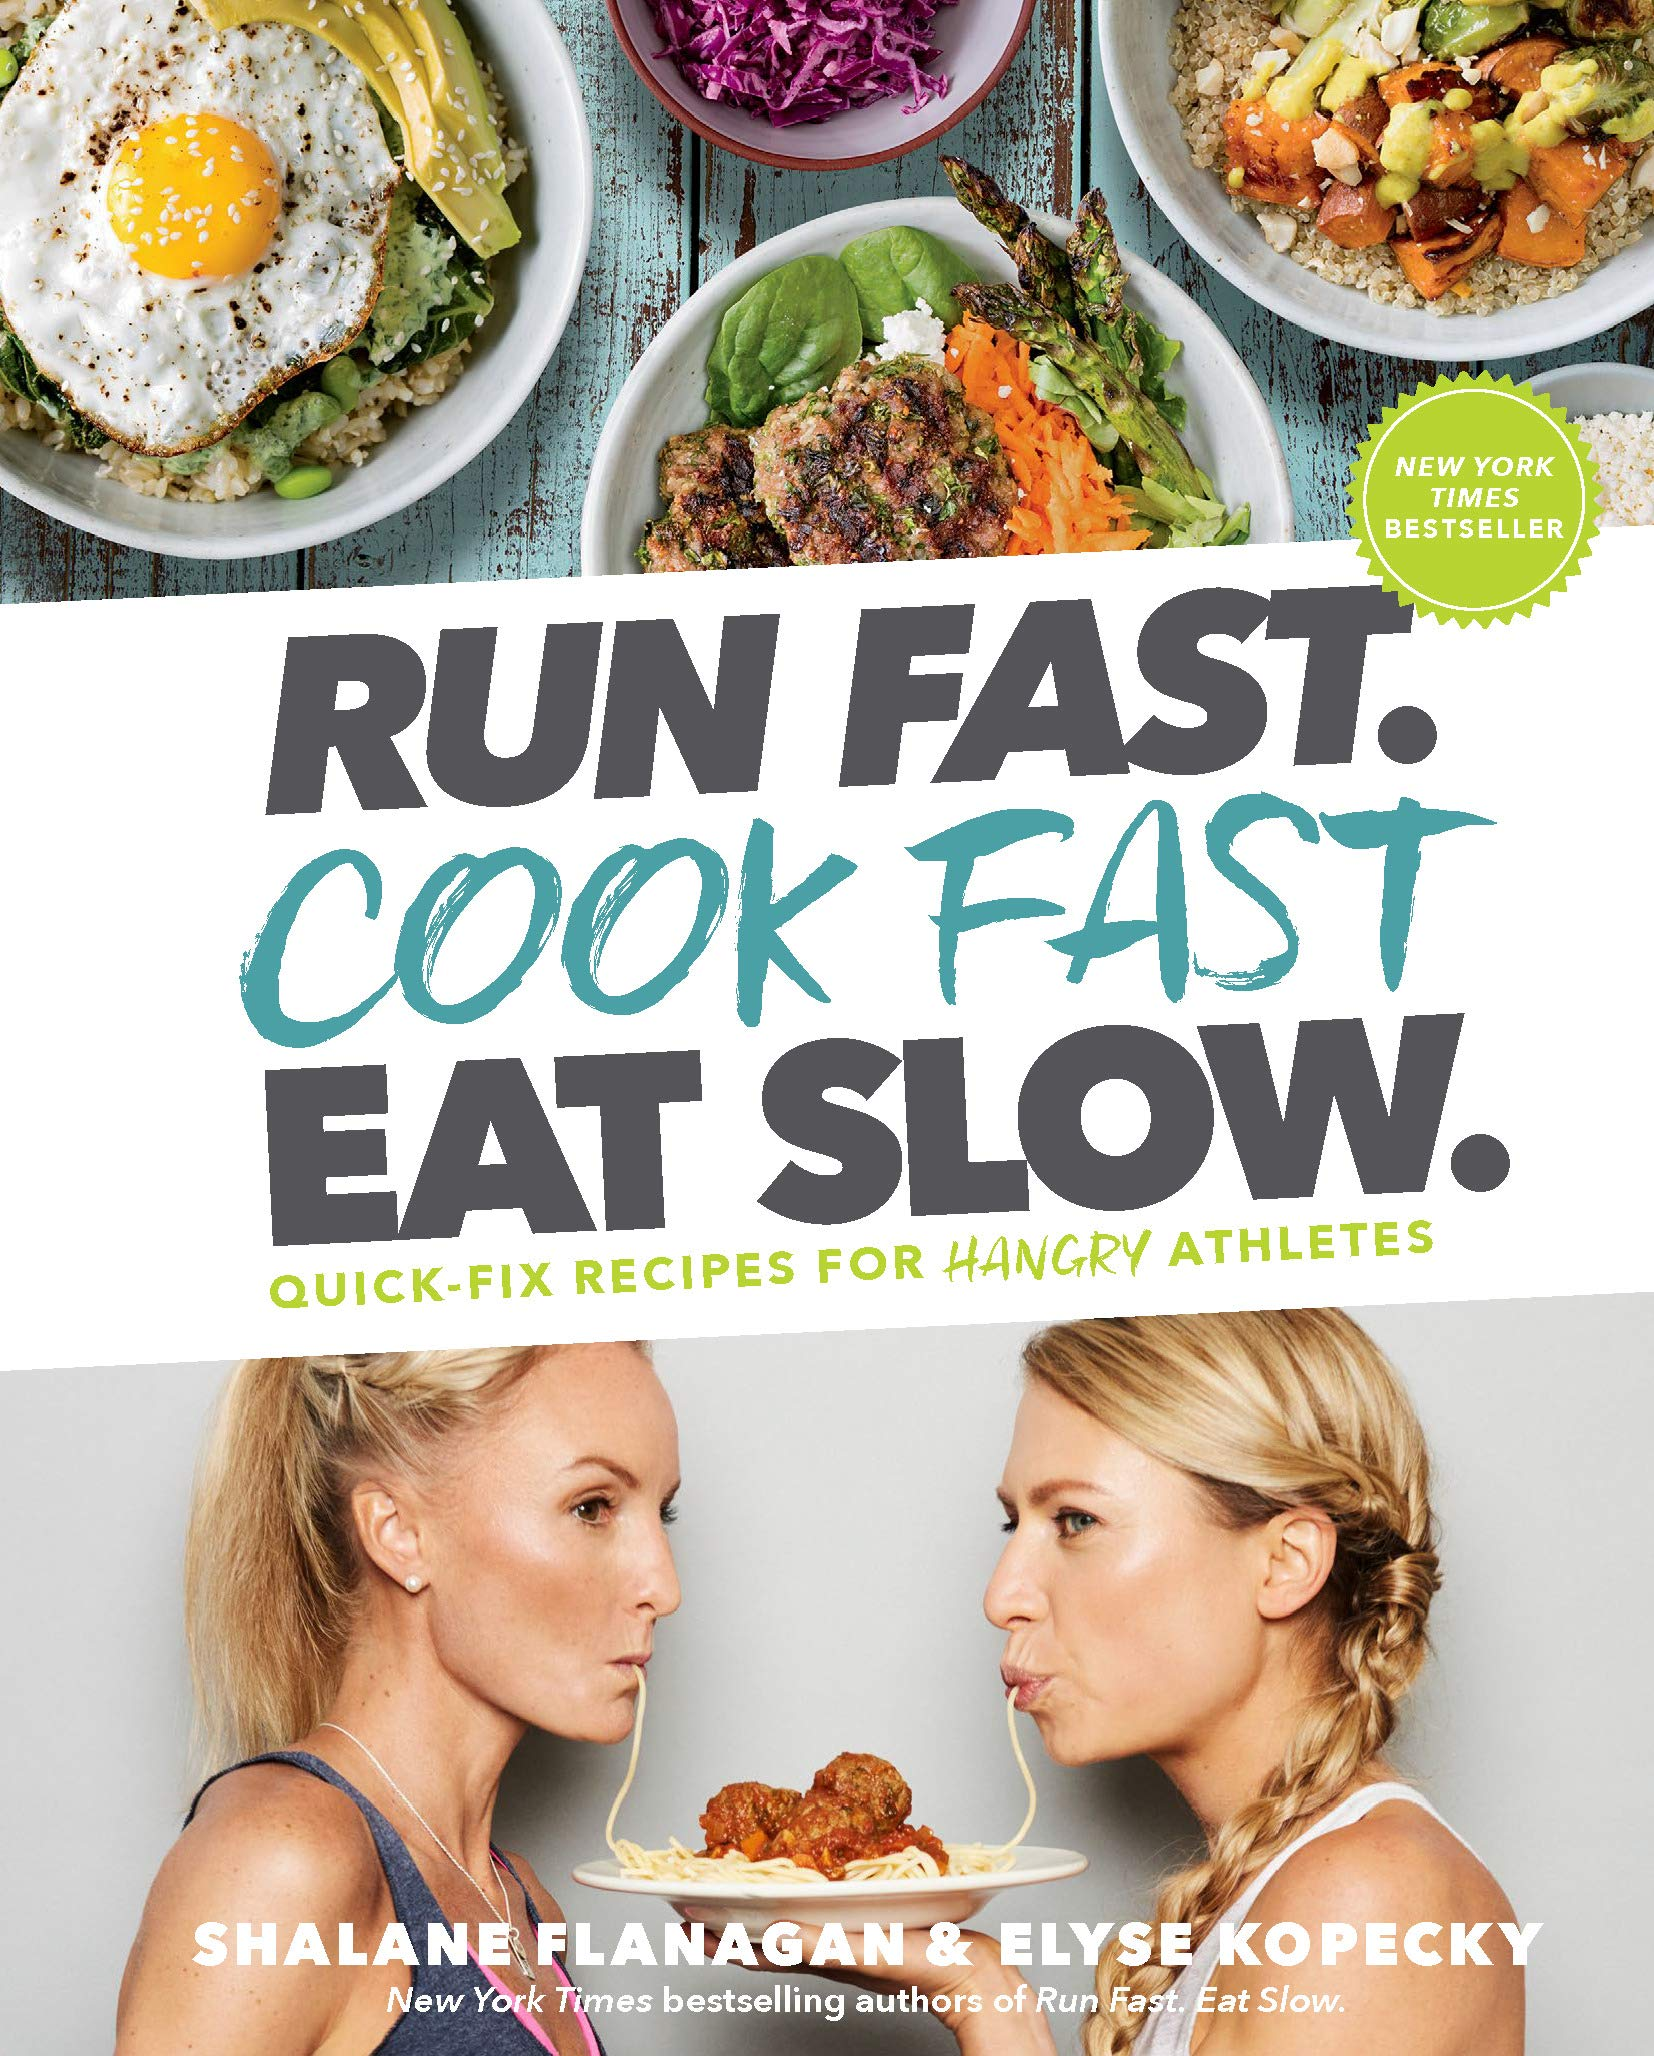 Run Fast Cook Eat Slow product image